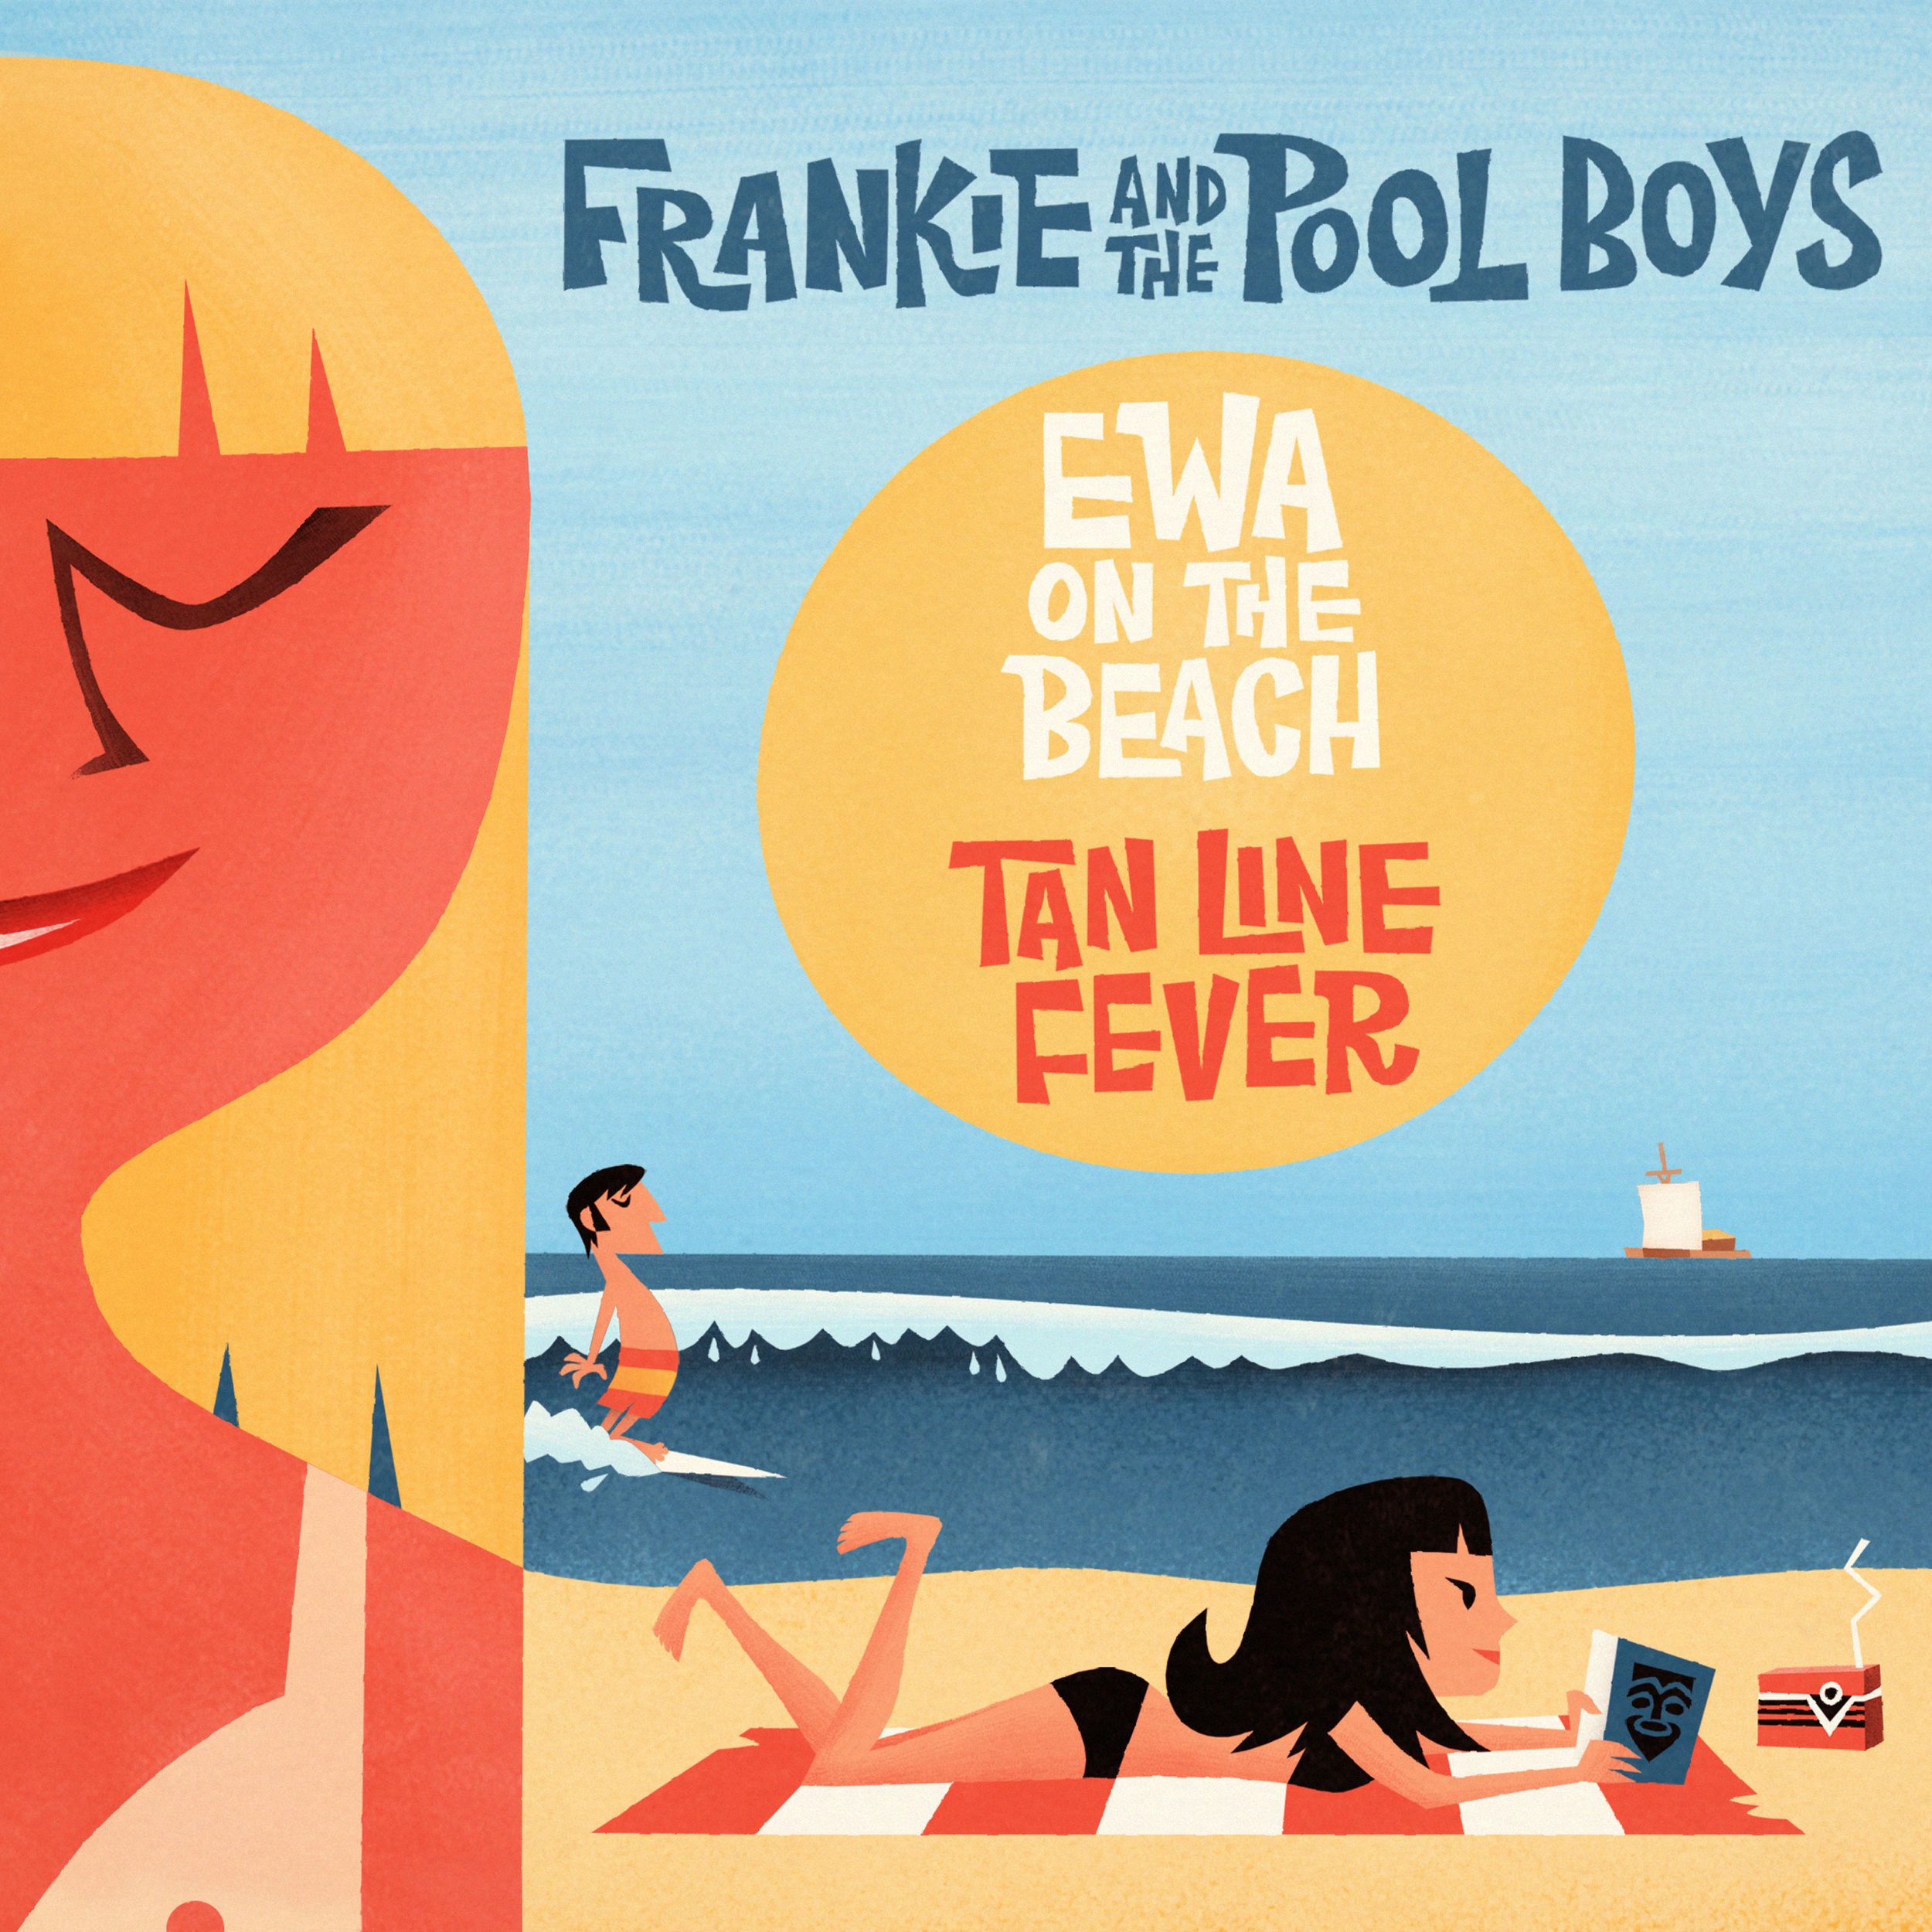 "FRANKIE & THE POOL BOYS  ""Ewa on the Beach / Tan Line Fever"" - Single (HT-011) Format: 7"" Vinyl"